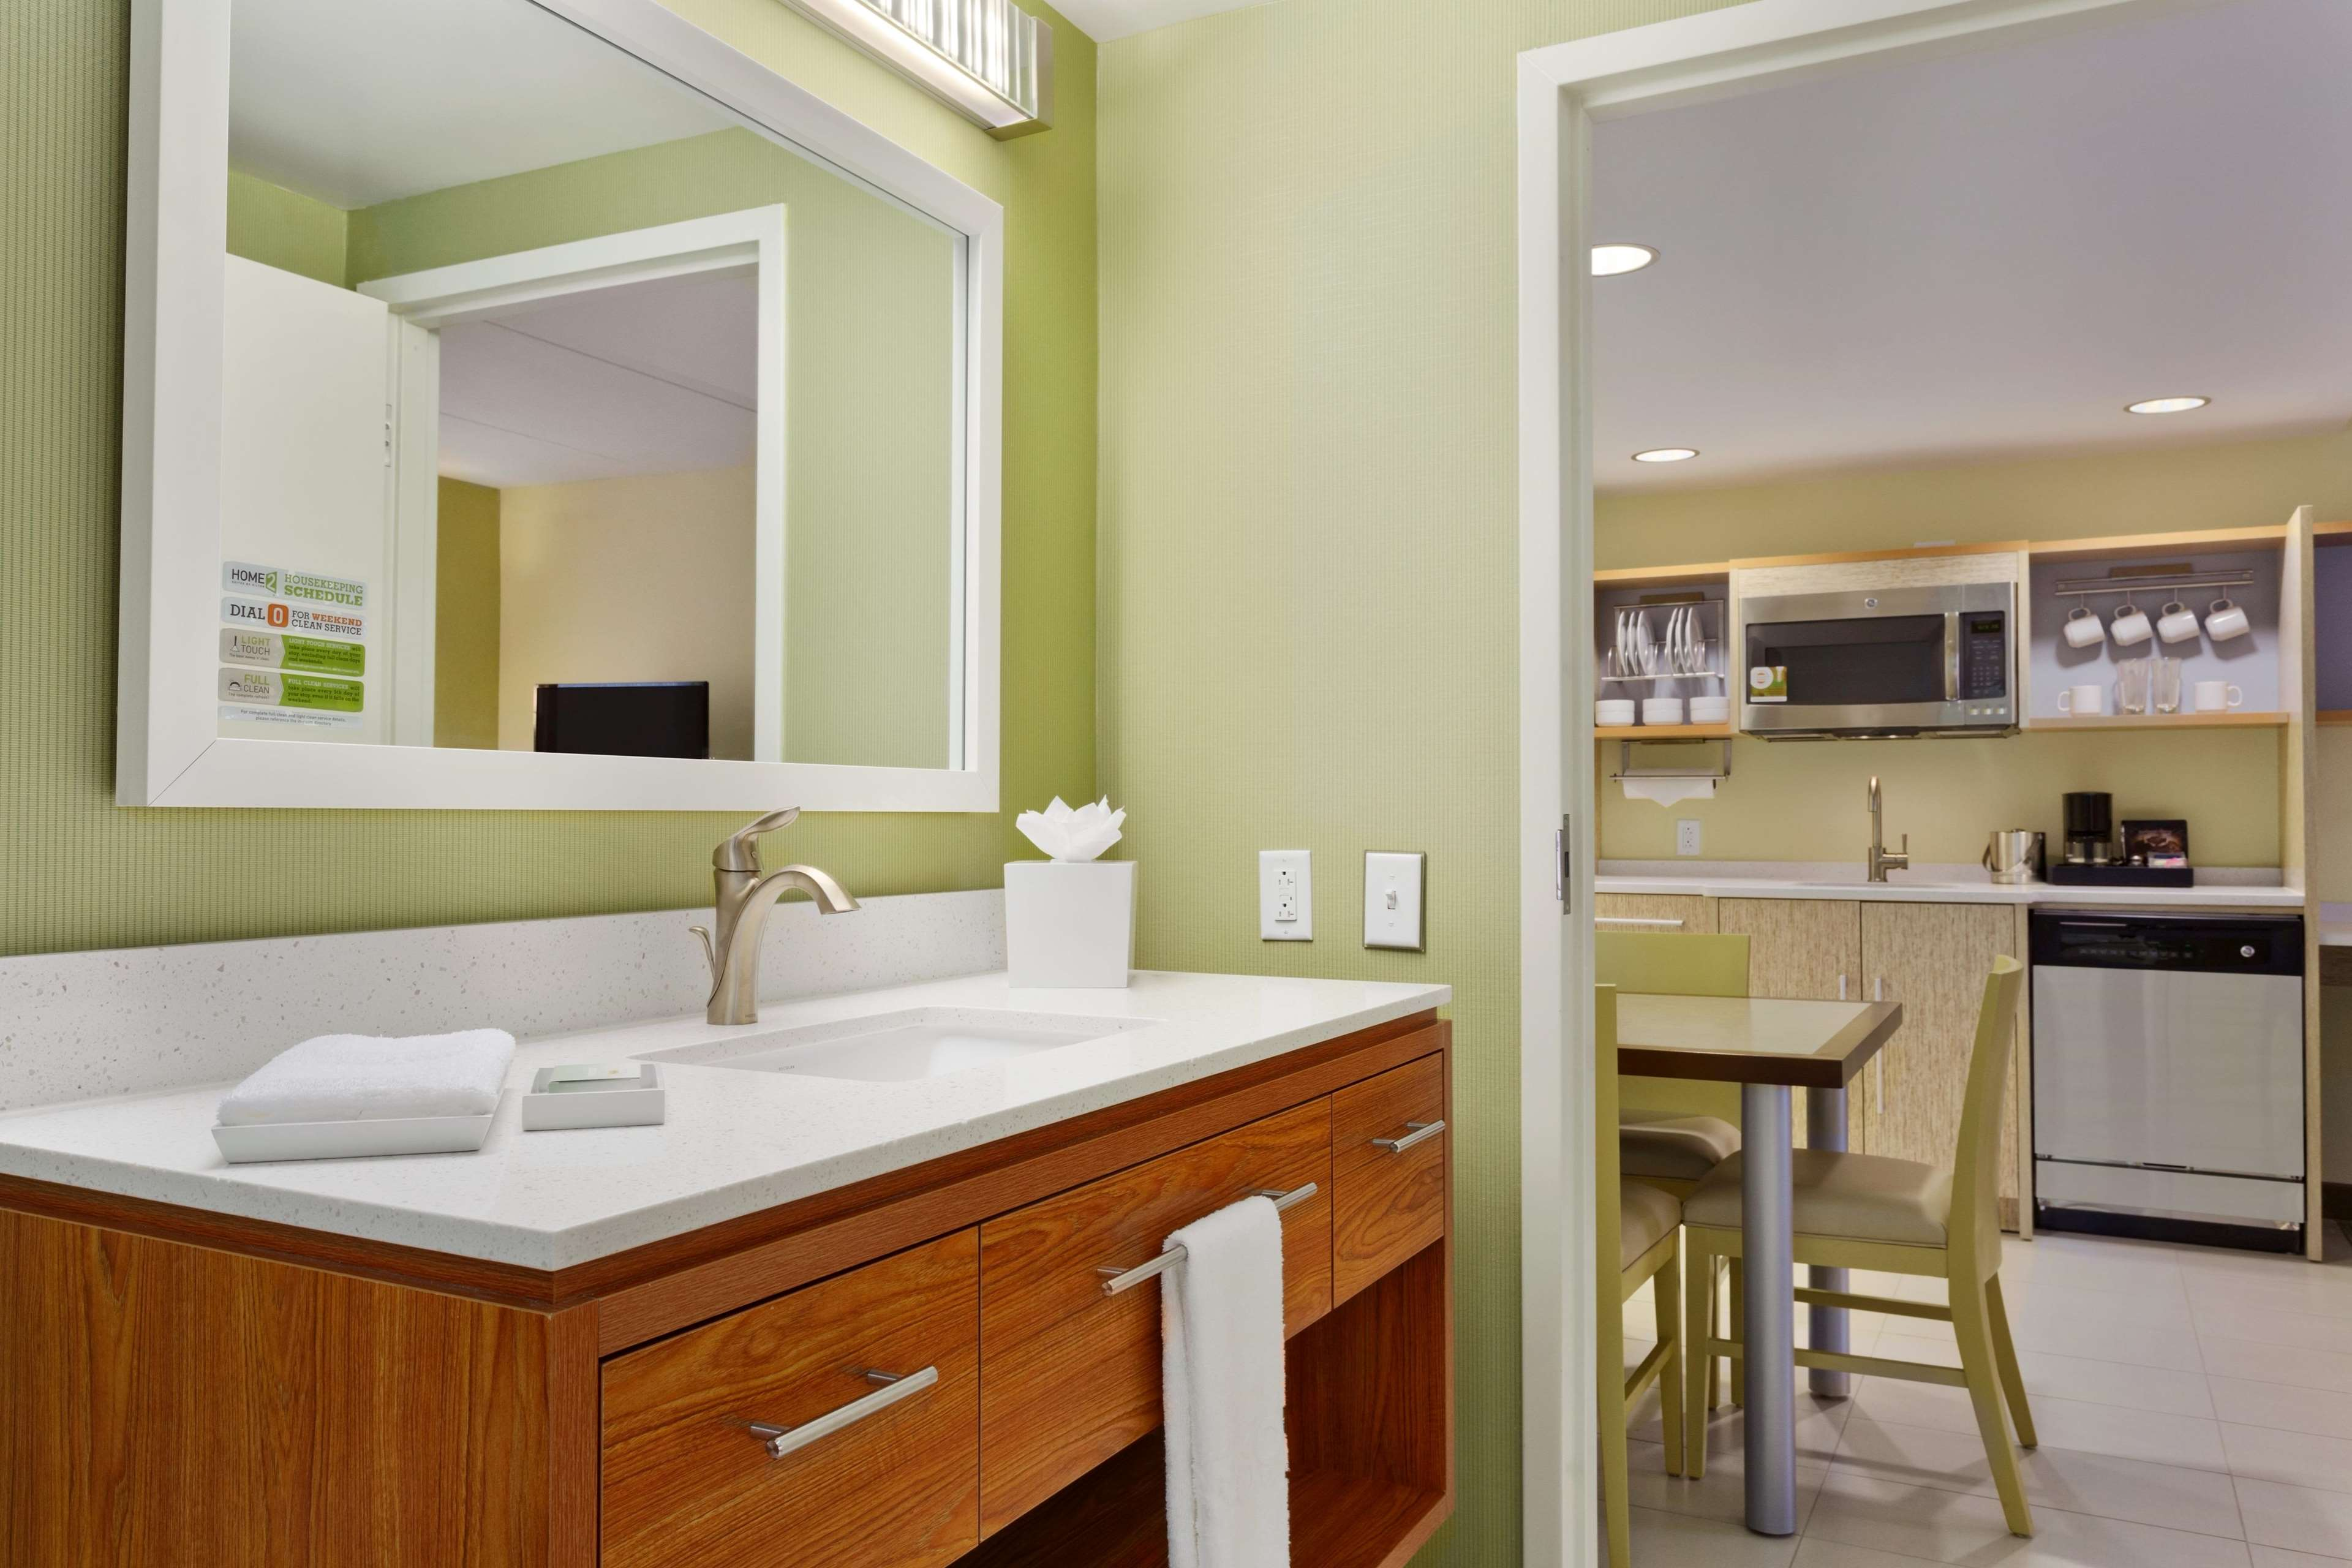 Home2 Suites by Hilton Baltimore / Aberdeen, MD image 6